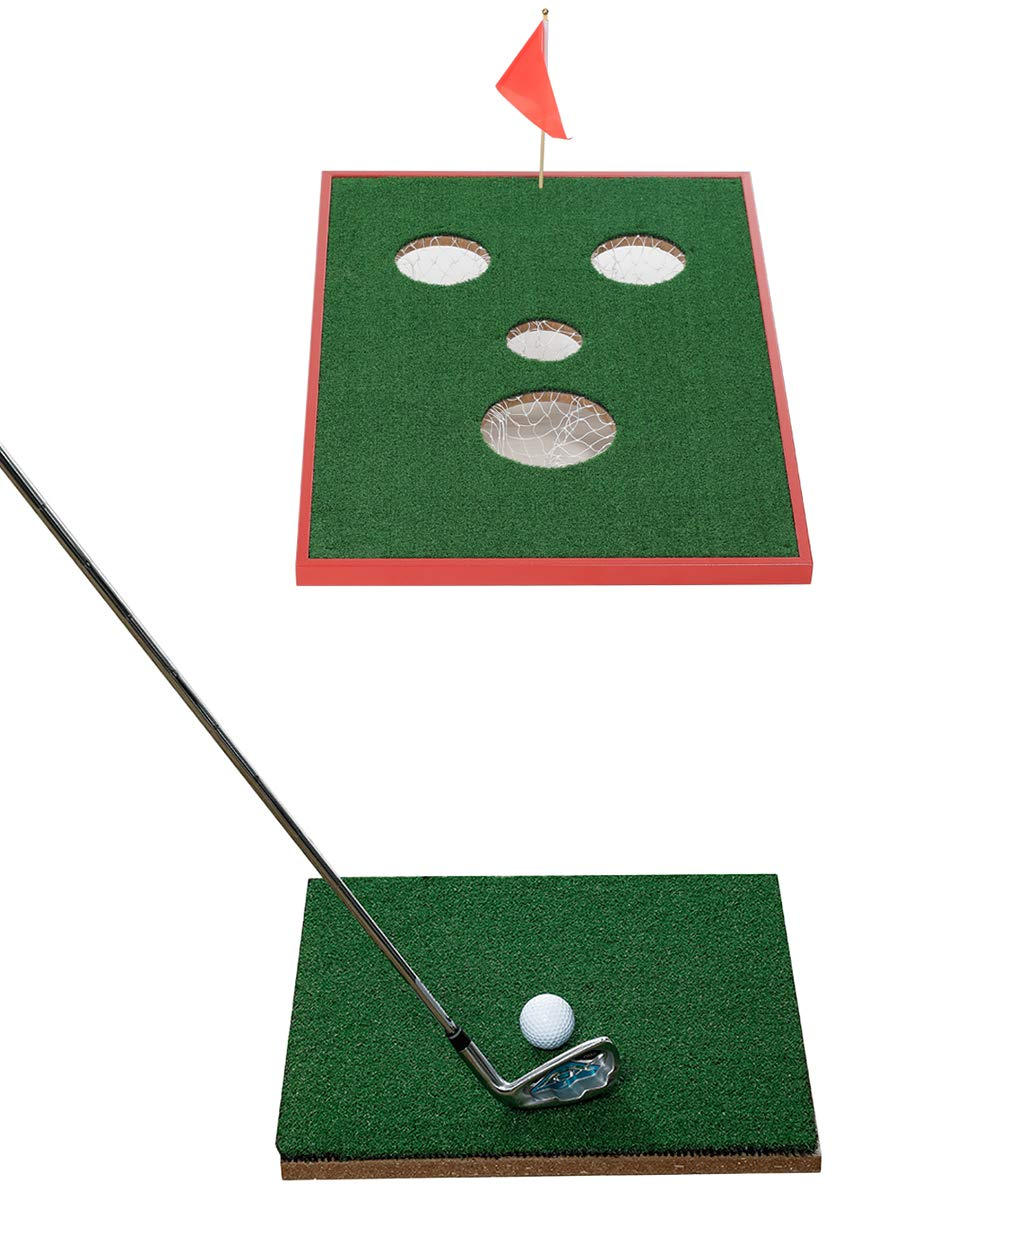 SPRAWL Cornhole Golf Chipping Game – Indoor Outdoor Golf Chip Game for Tailgate,Beach,Office,Backyard